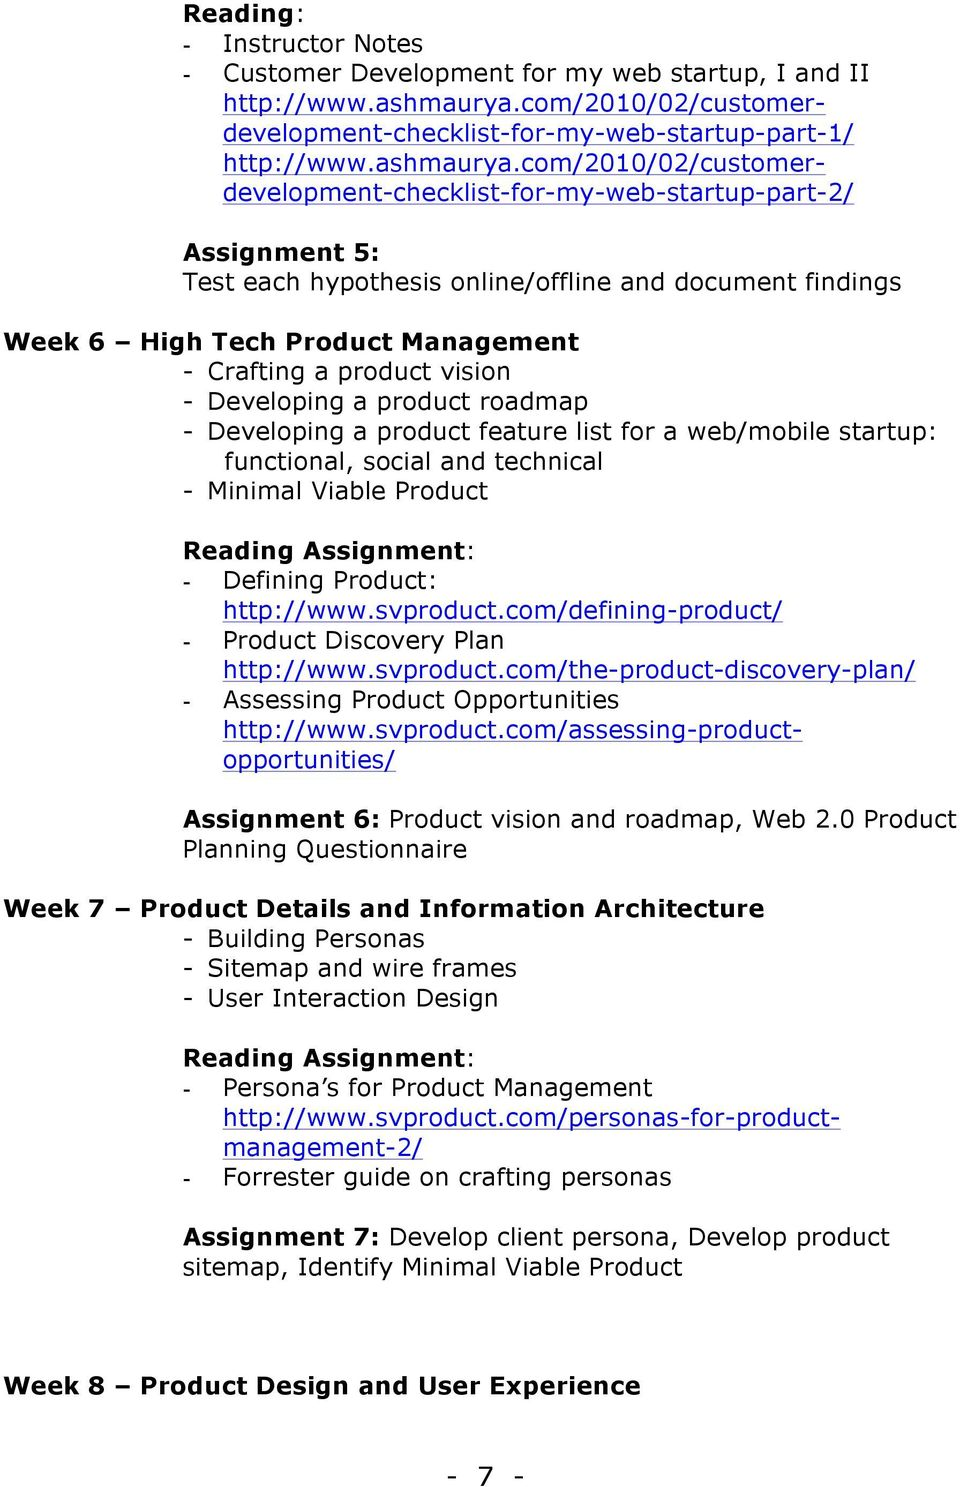 com/2010/02/customerdevelopment-checklist-for-my-web-startup-part-2/ Assignment 5: Test each hypothesis online/offline and document findings Week 6 High Tech Product Management - Crafting a product